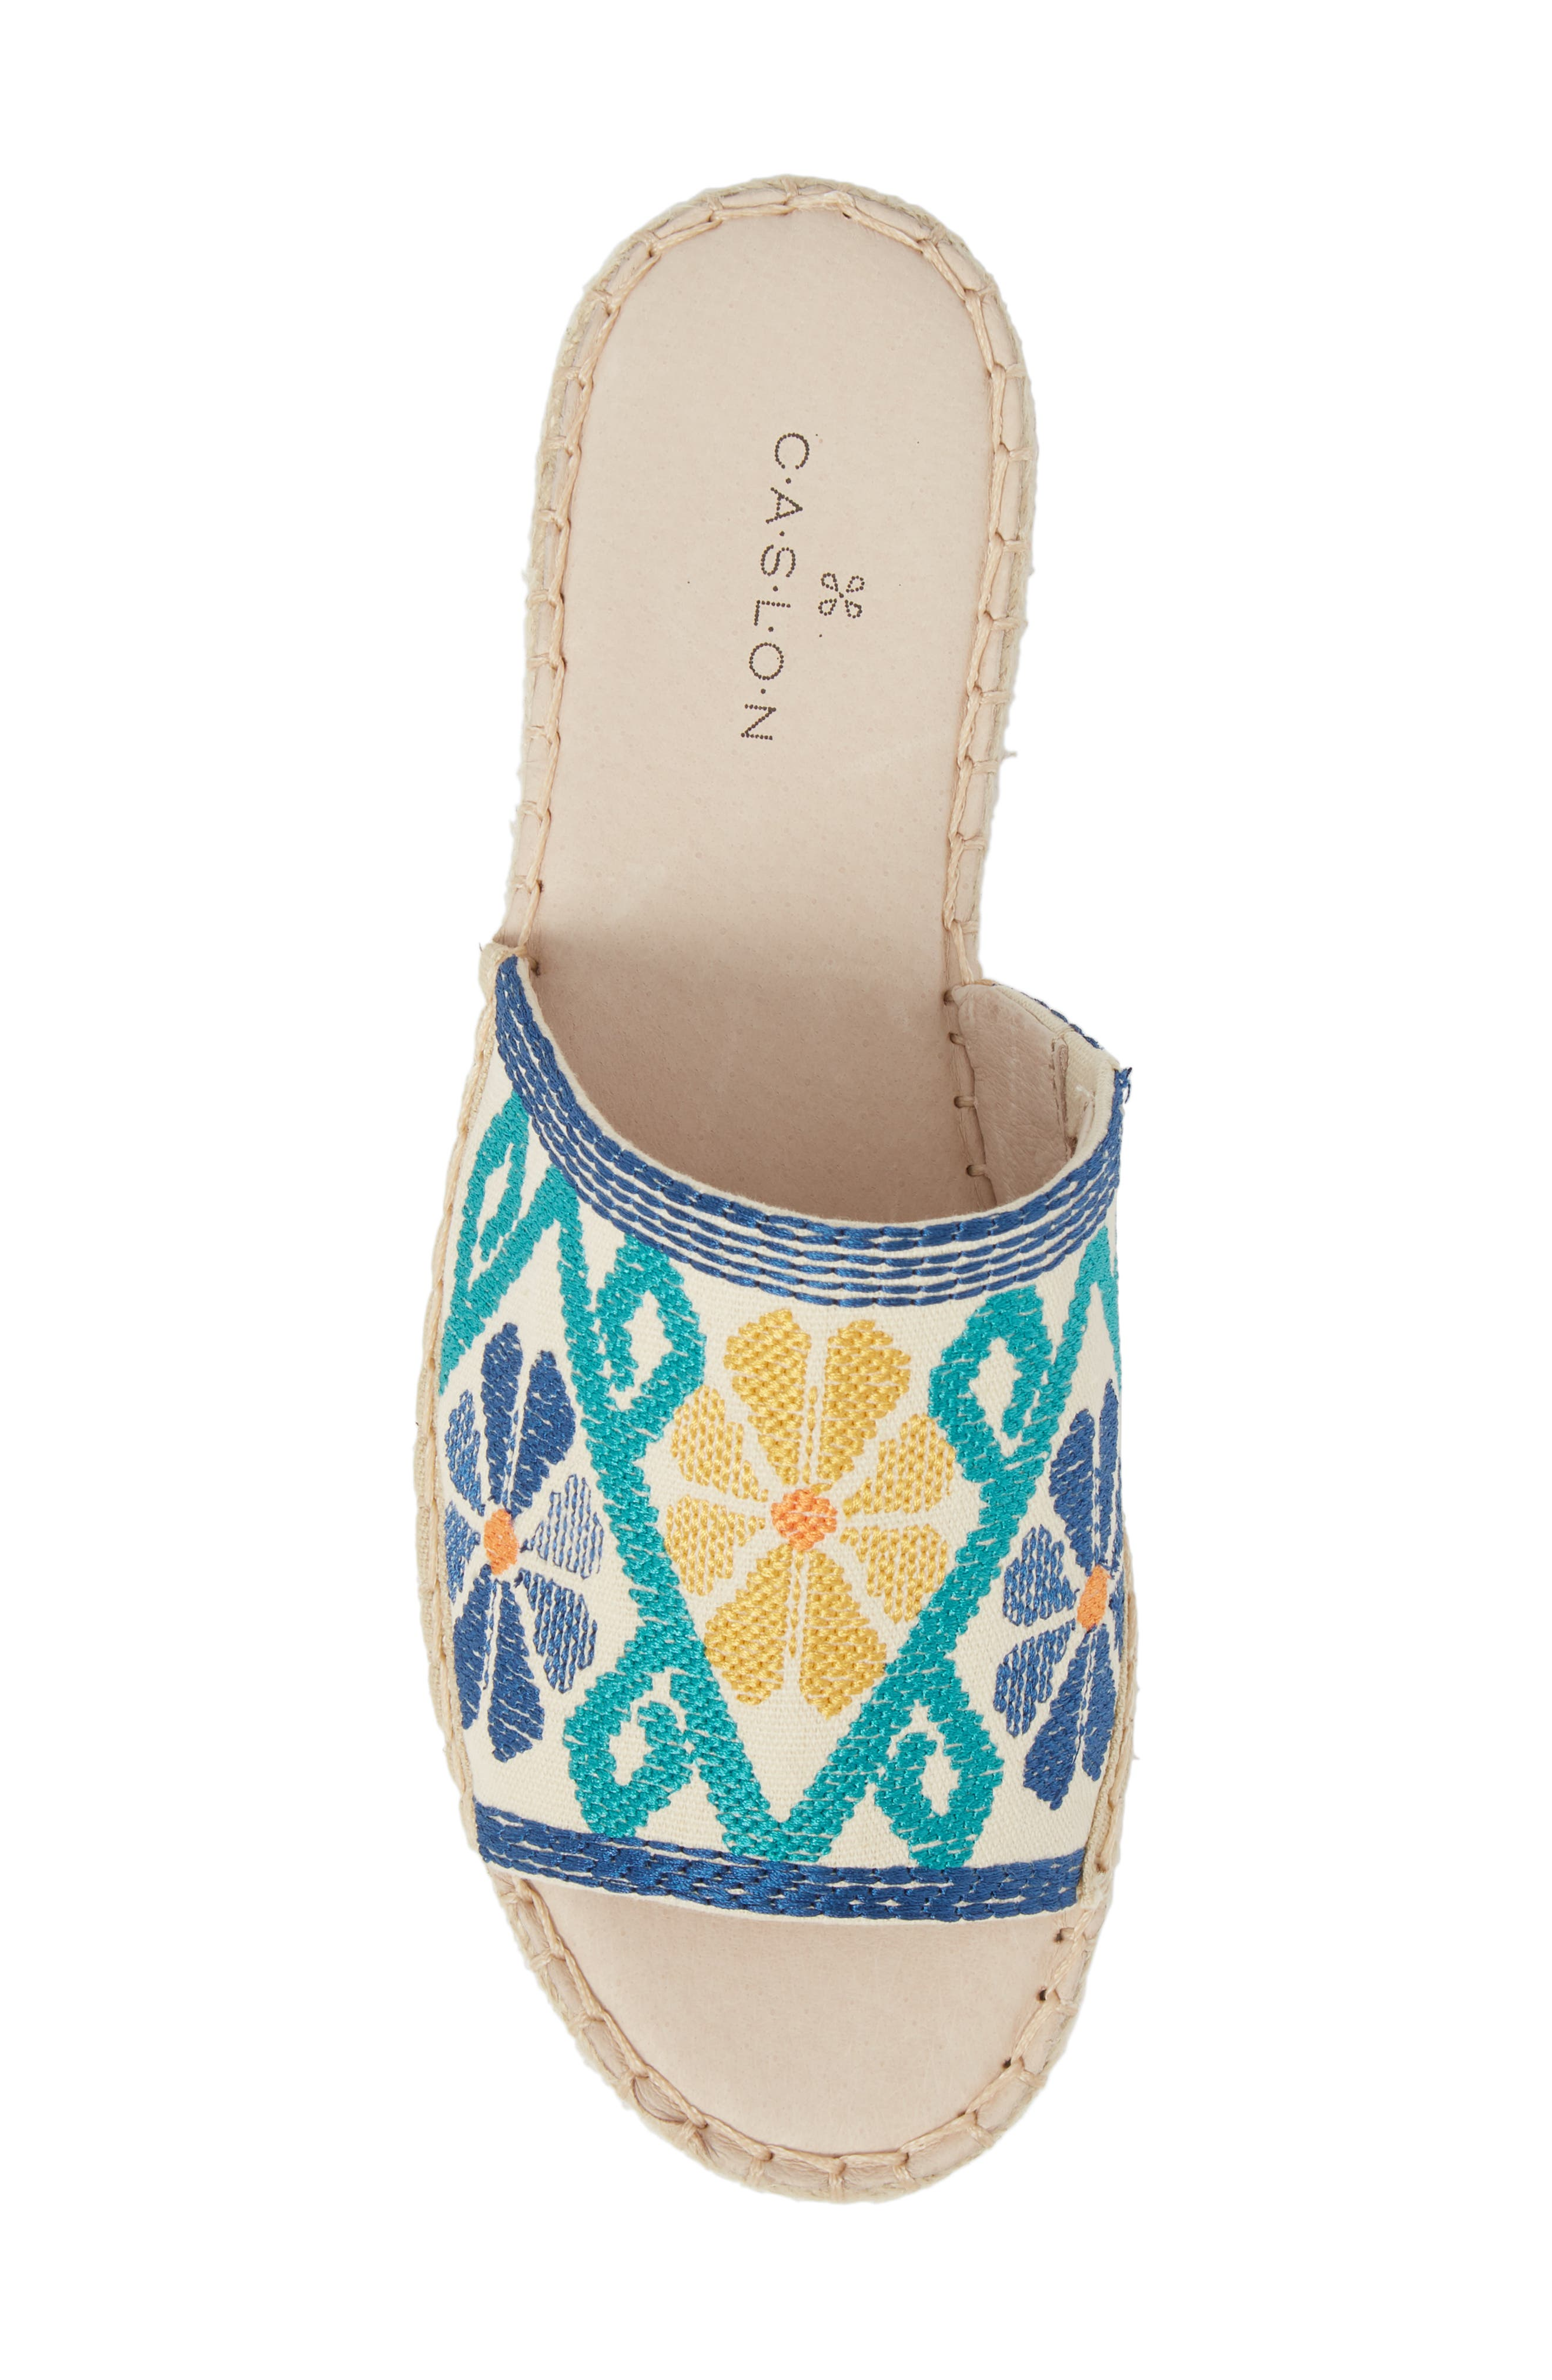 Cammy Platform Slide Sandal,                             Alternate thumbnail 6, color,                             Natural Embroidery Fabric